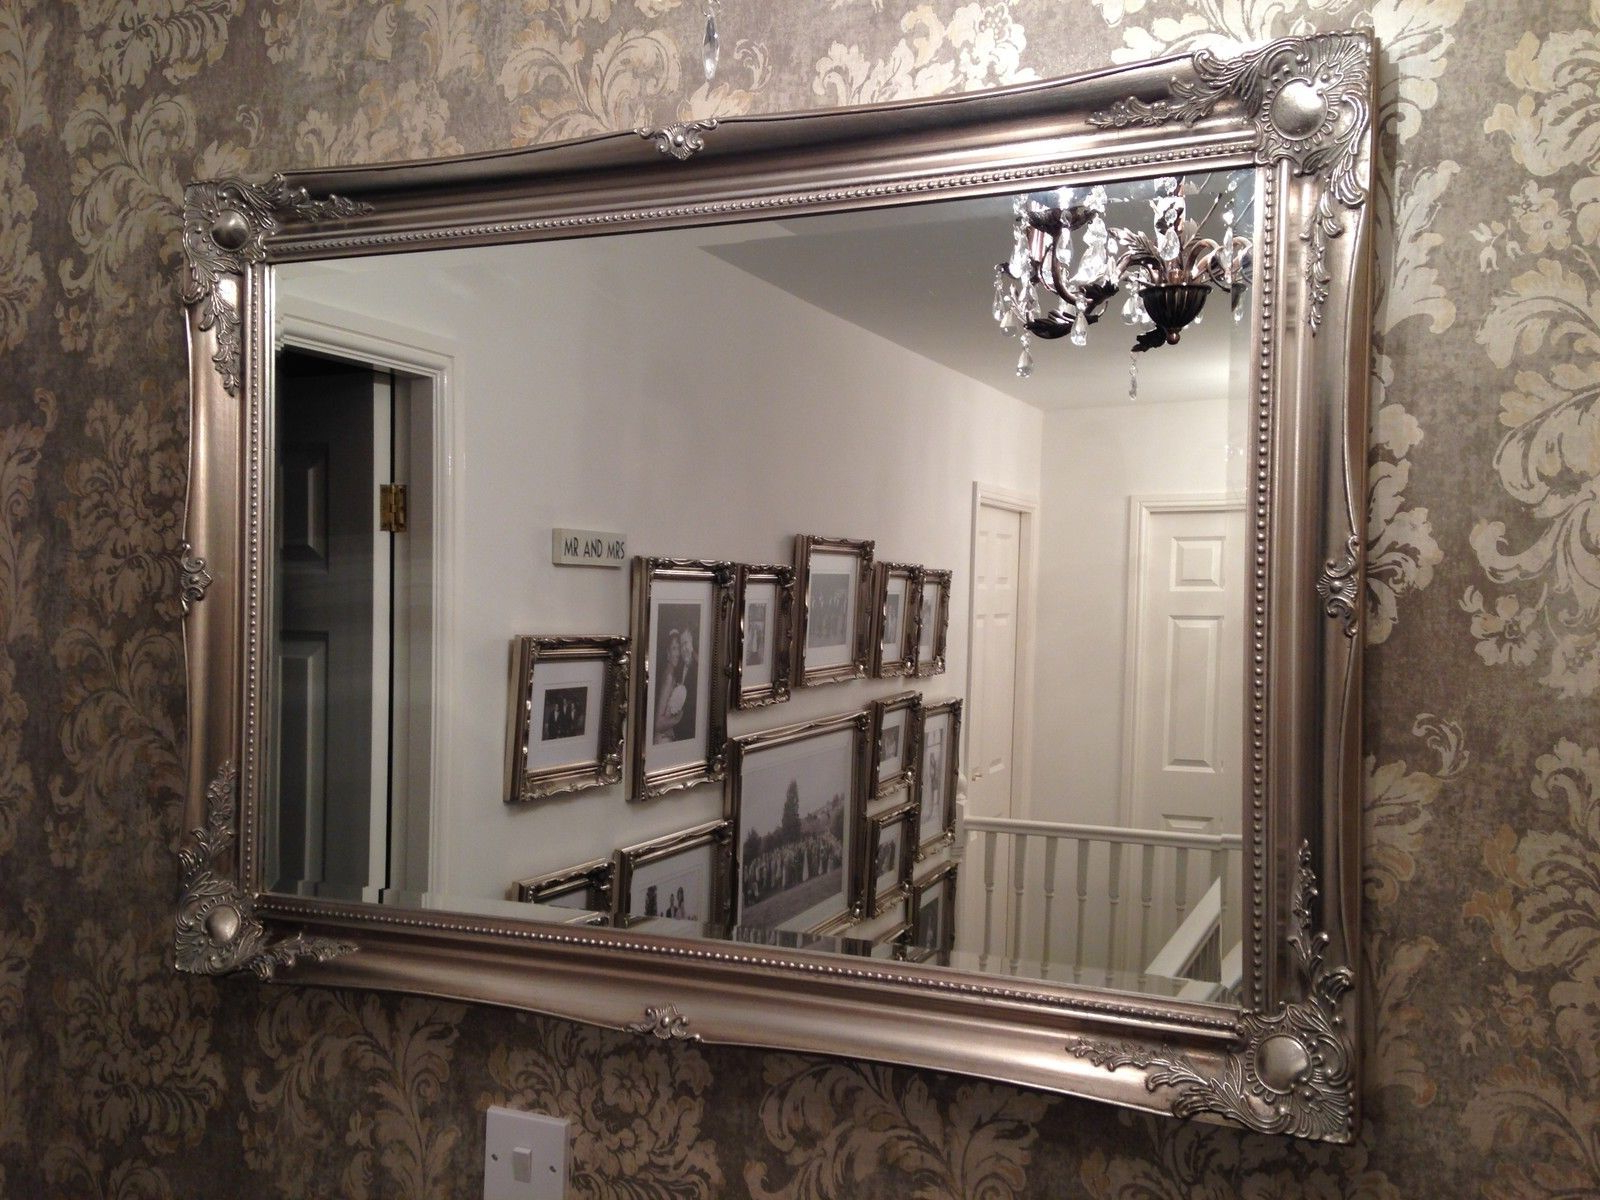 Very Large Wall Mirrors With Regard To Latest Oversized Rustic Wall Mirrors In Sterling Wade Abigail Round Large (View 13 of 20)